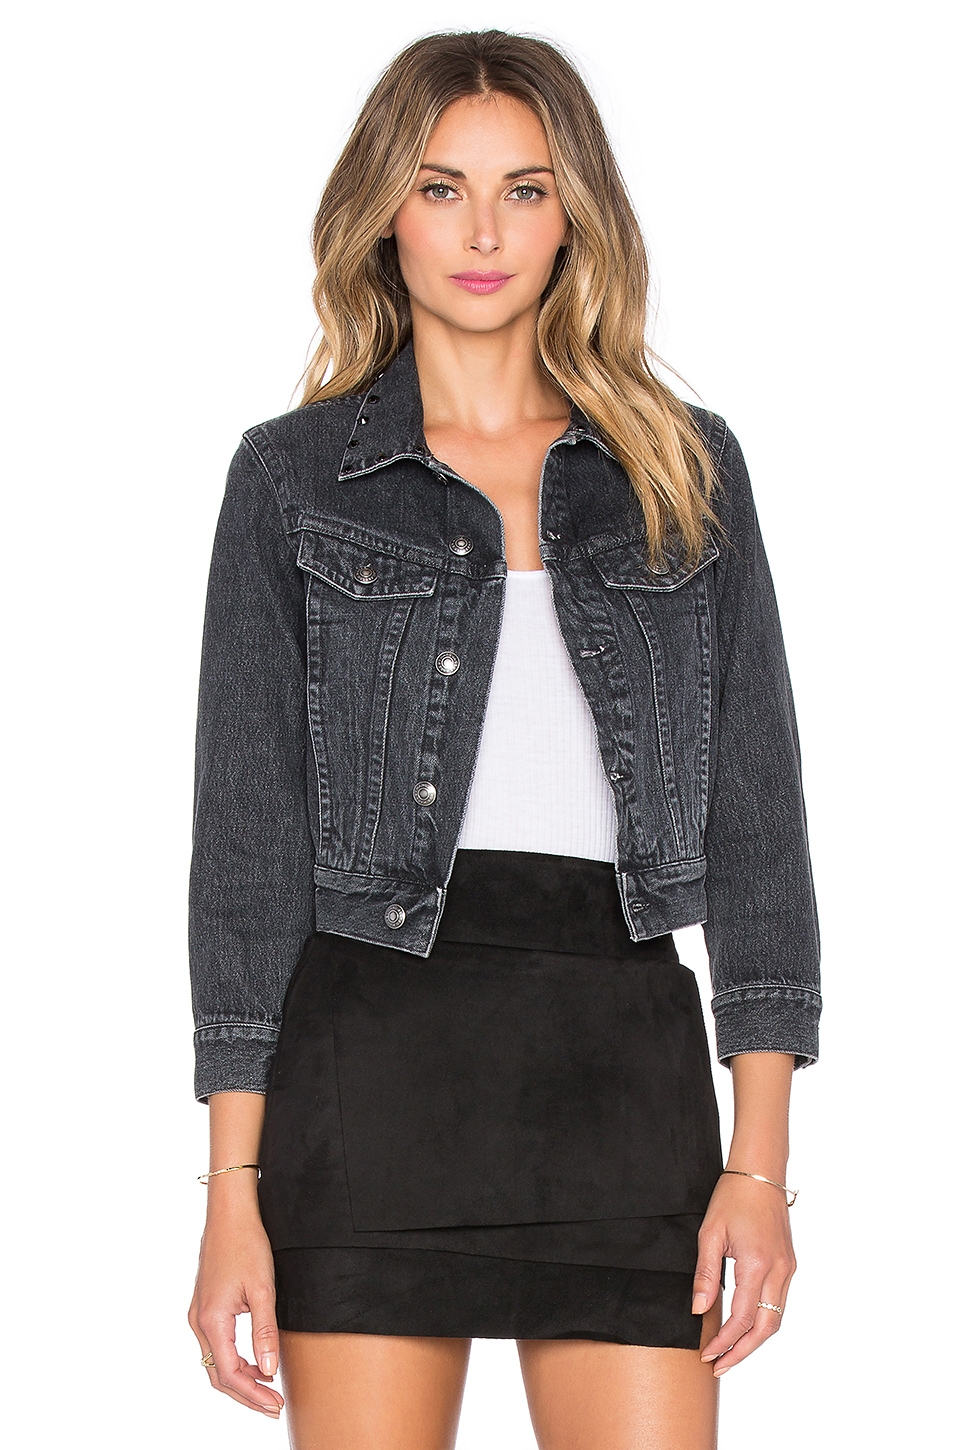 Marc by marc jacobs Cropped Denim Jacket in Black | Lyst